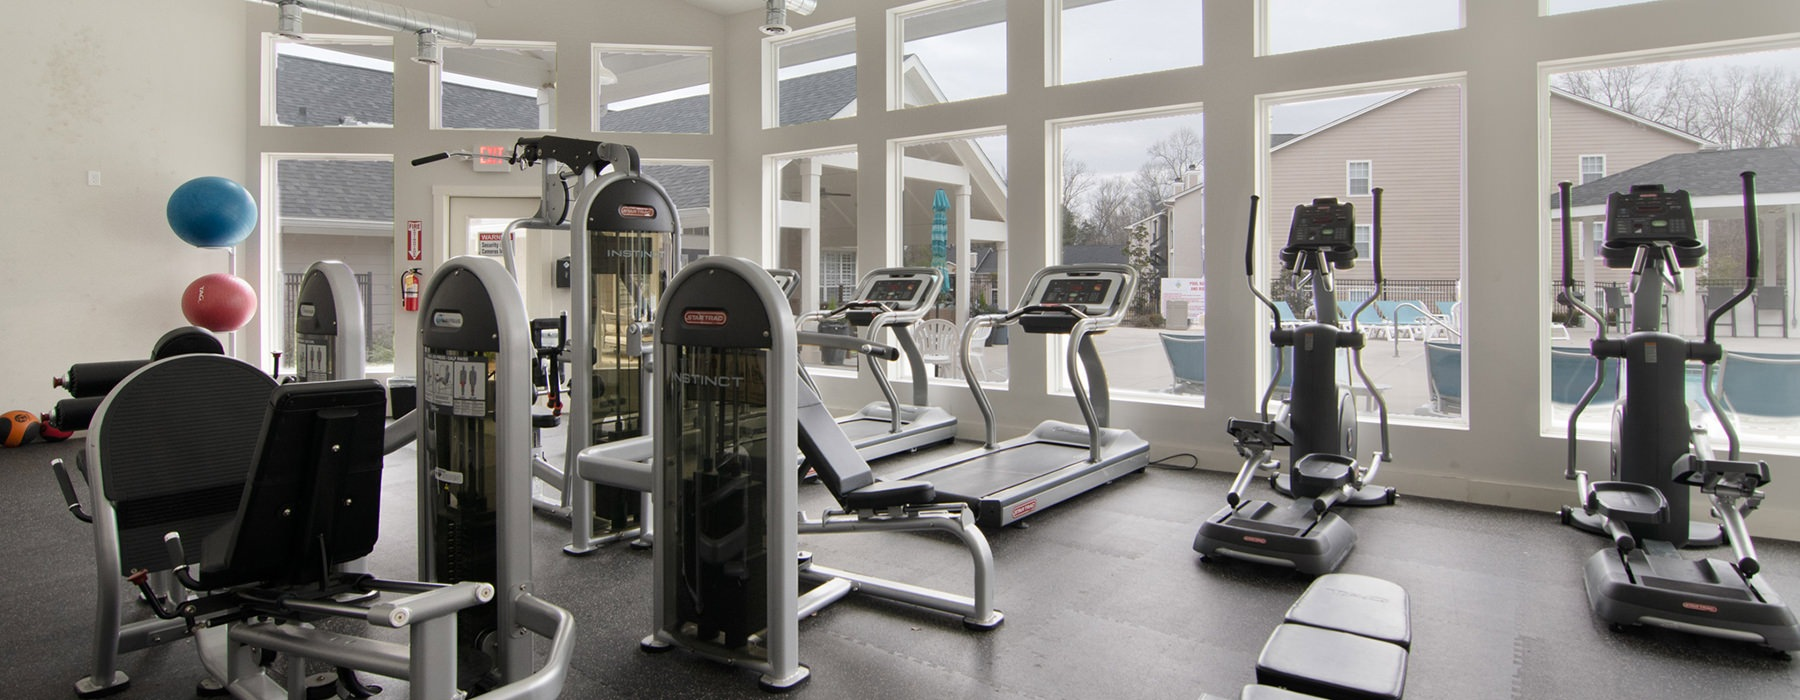 Fitness Center with large windows and cardio machines